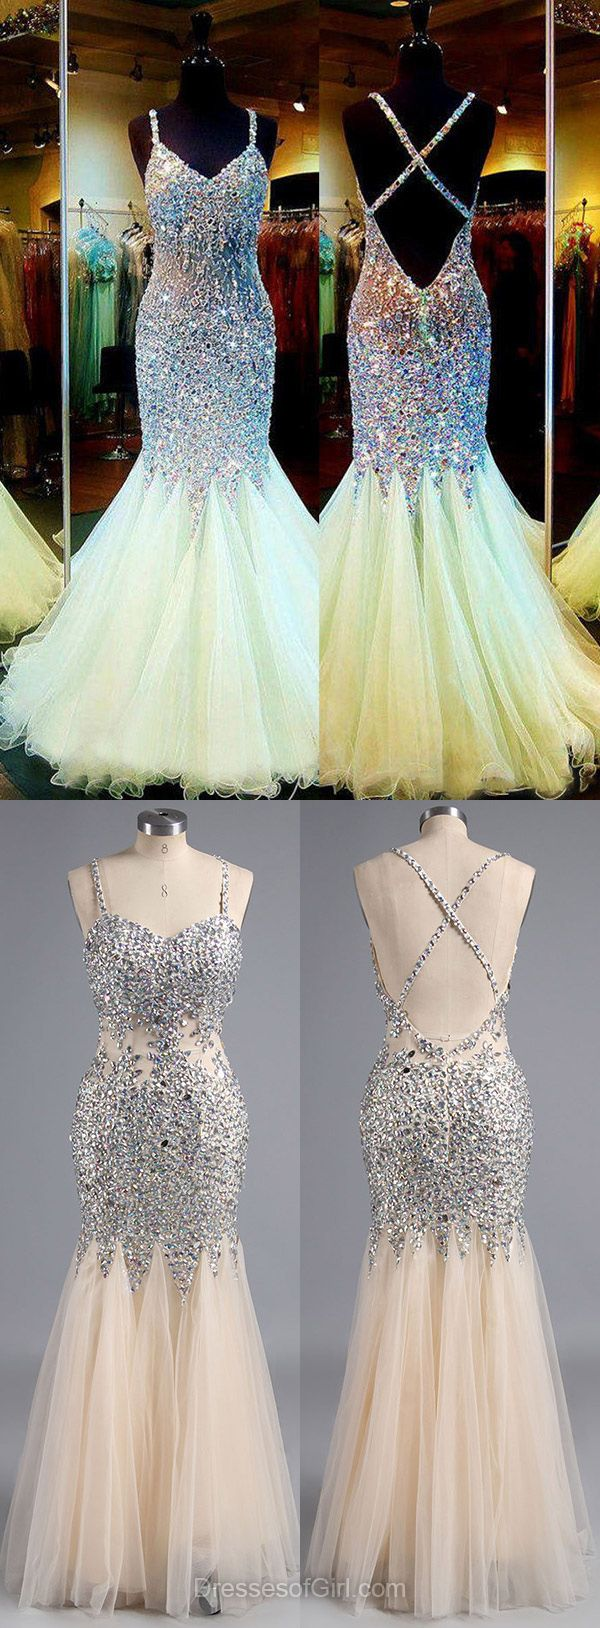 Exclusive V-neck Backless Tulle Crystal Detailing Trumpet/Mermaid Prom Dresses